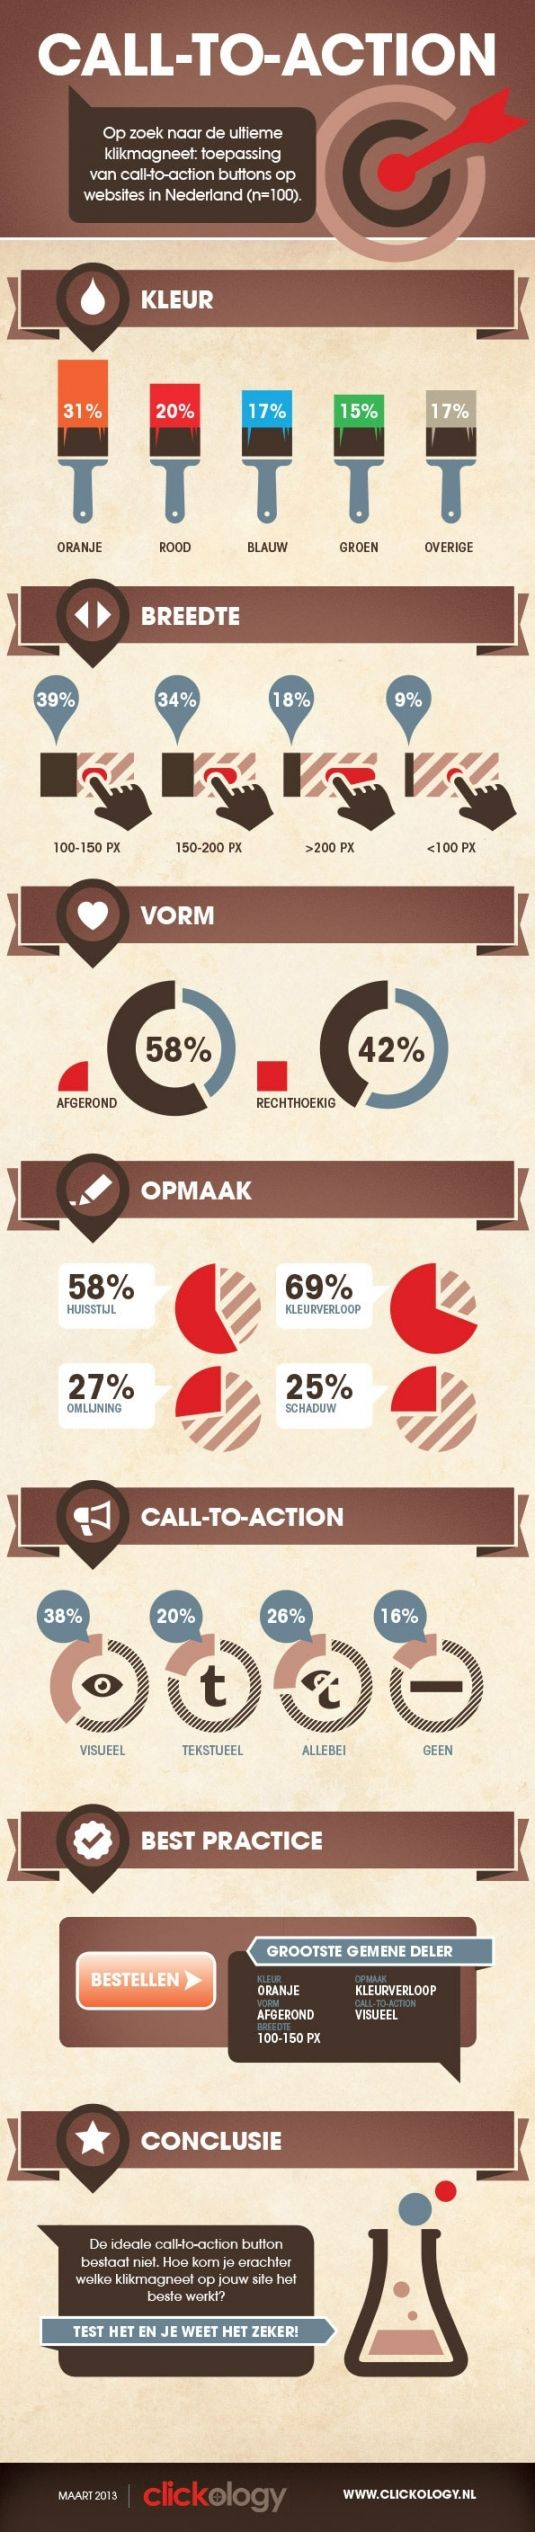 wat is de ideale call-to-action button? (Clickology)